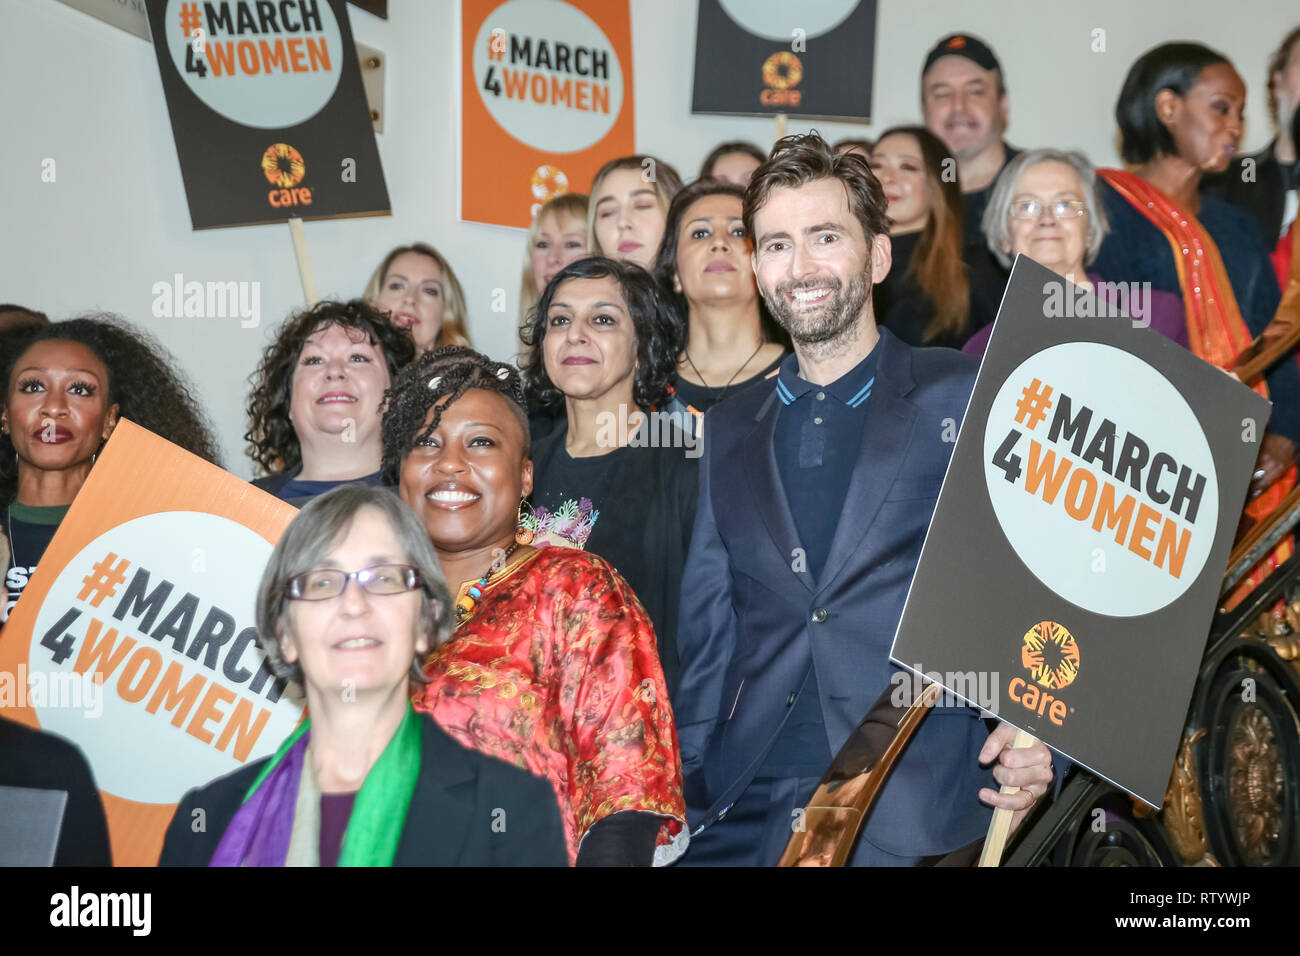 London, UK, 3rd Mar 2019.. Actor David Tennant poses with the other speakers and celebrities. March4Women is CARE International's annual month of action for gender equality. This year's London event is held at Central Hall, rather than as an outdoor rally, and features speeches, debate and musical performances from celebrity supporters. Credit: Imageplotter/Alamy Live News - Stock Image